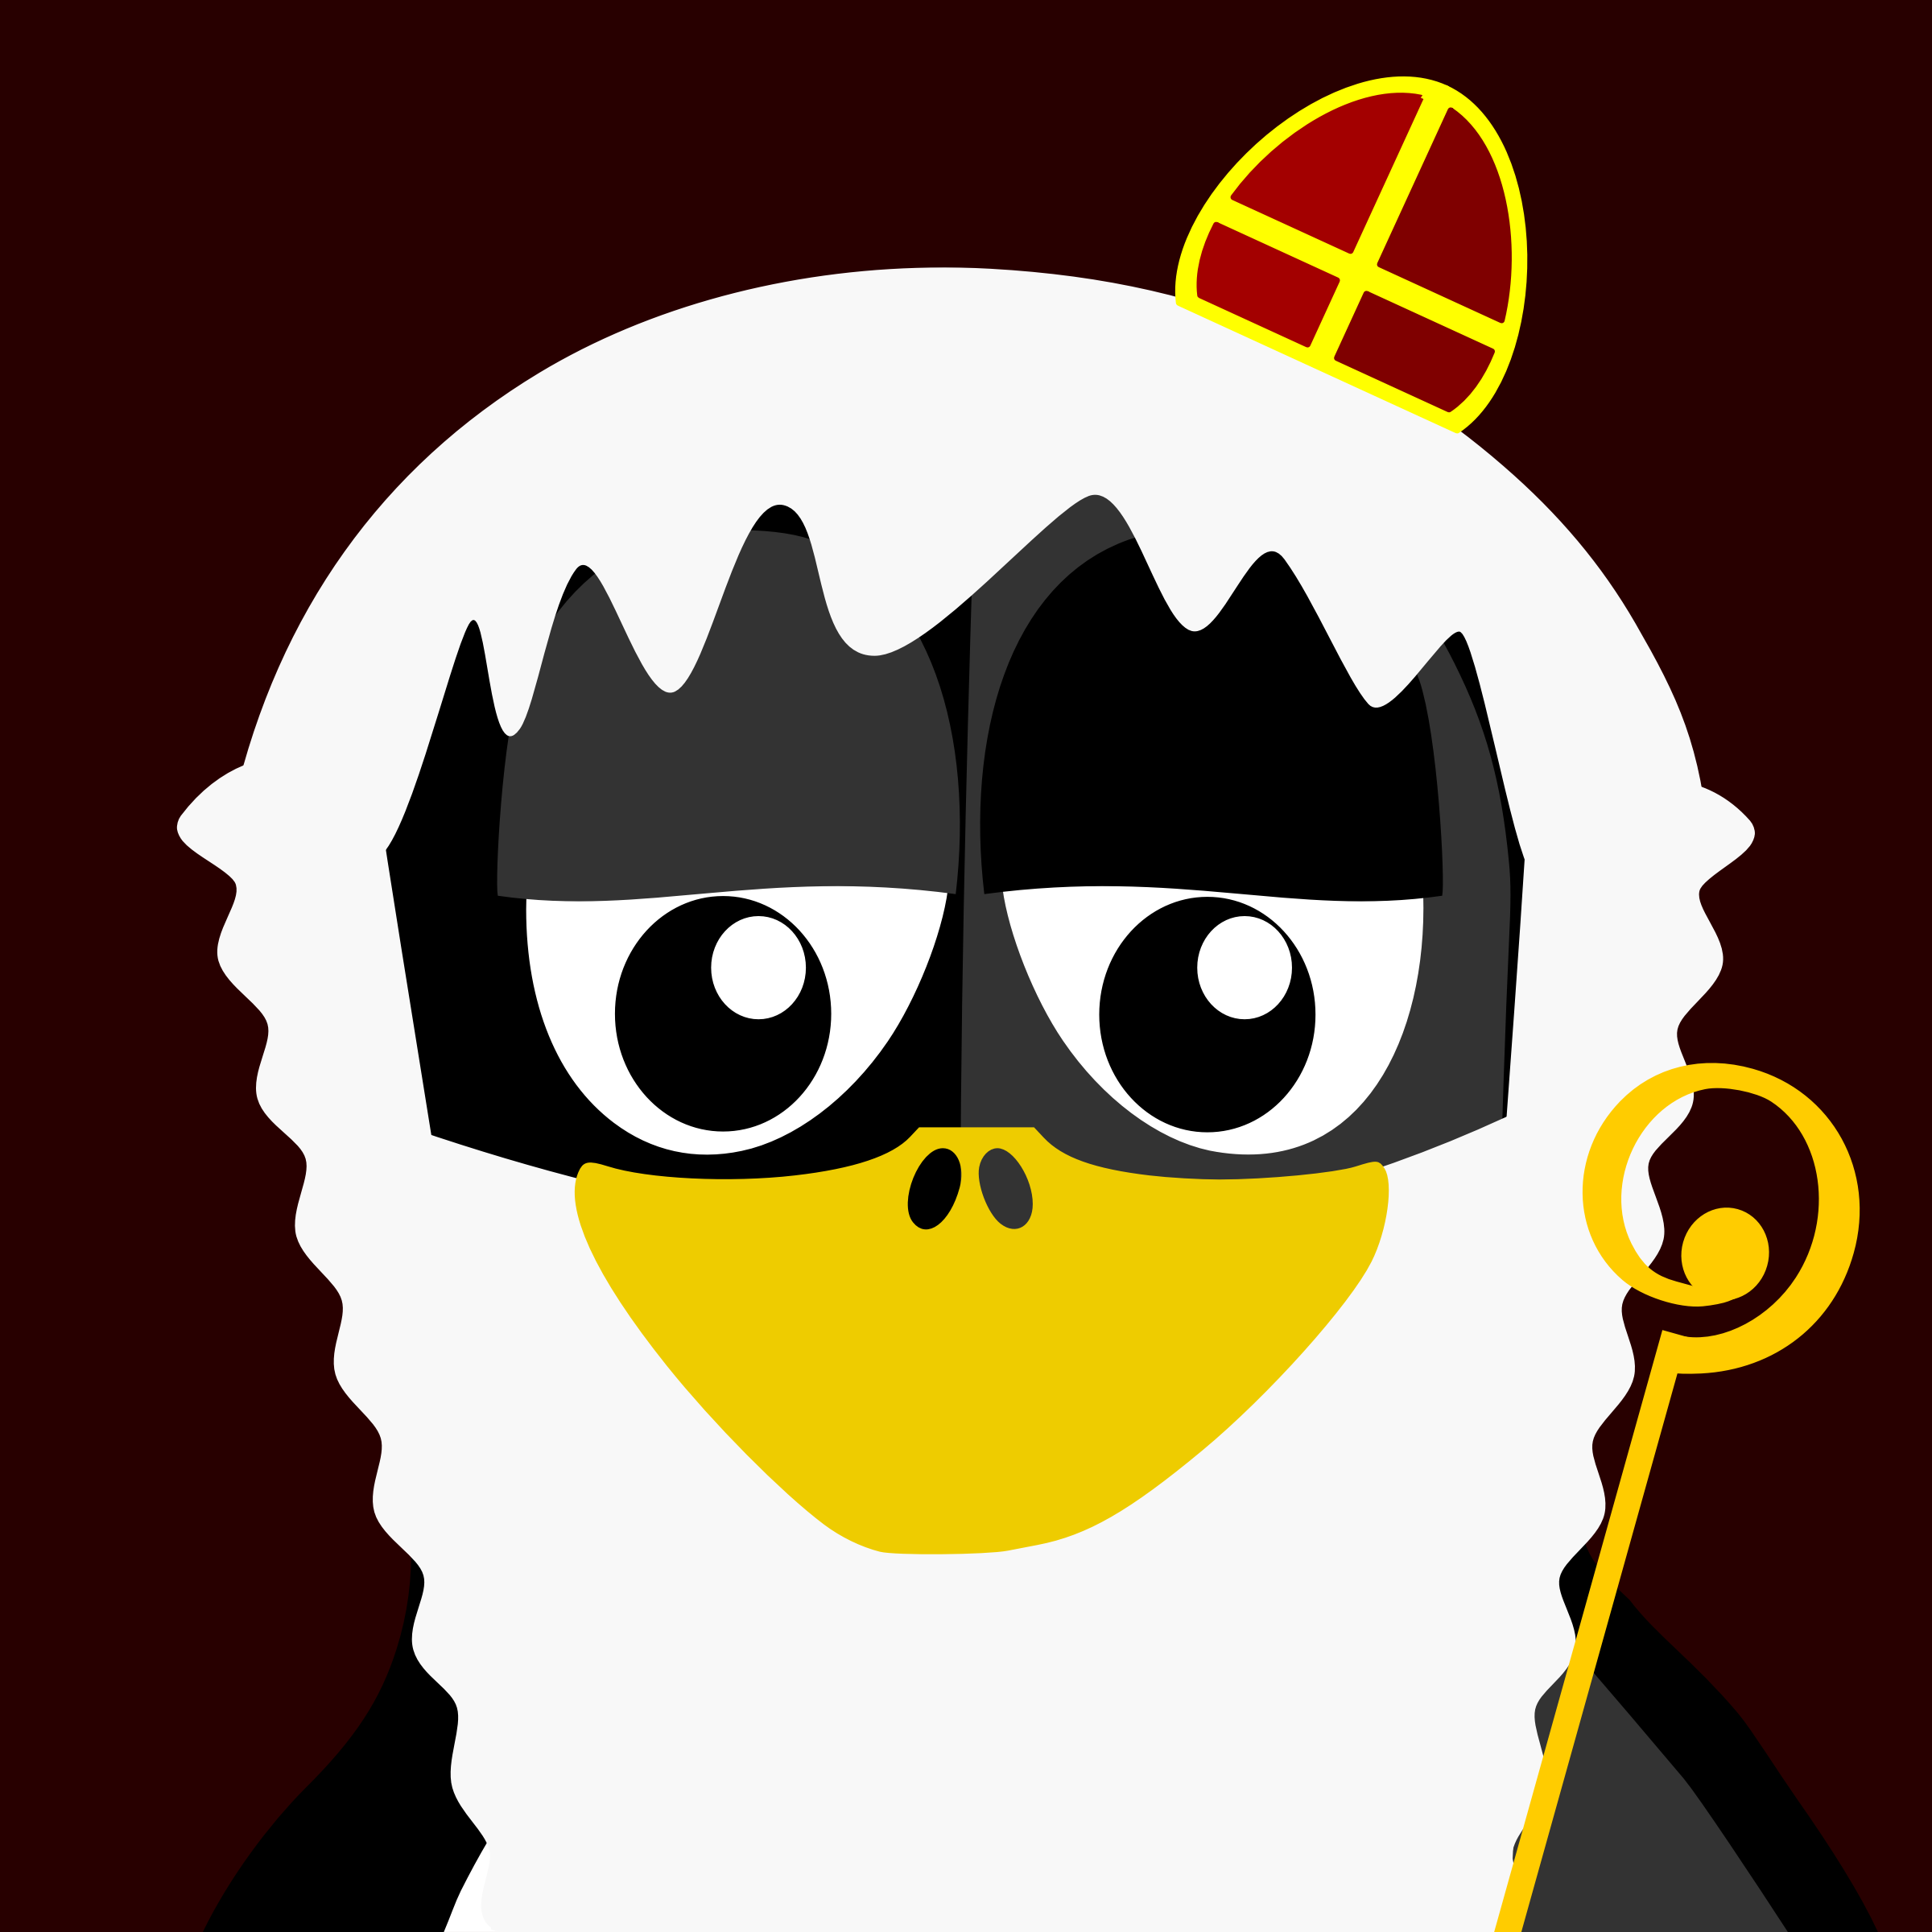 saint fun penguin by BartM